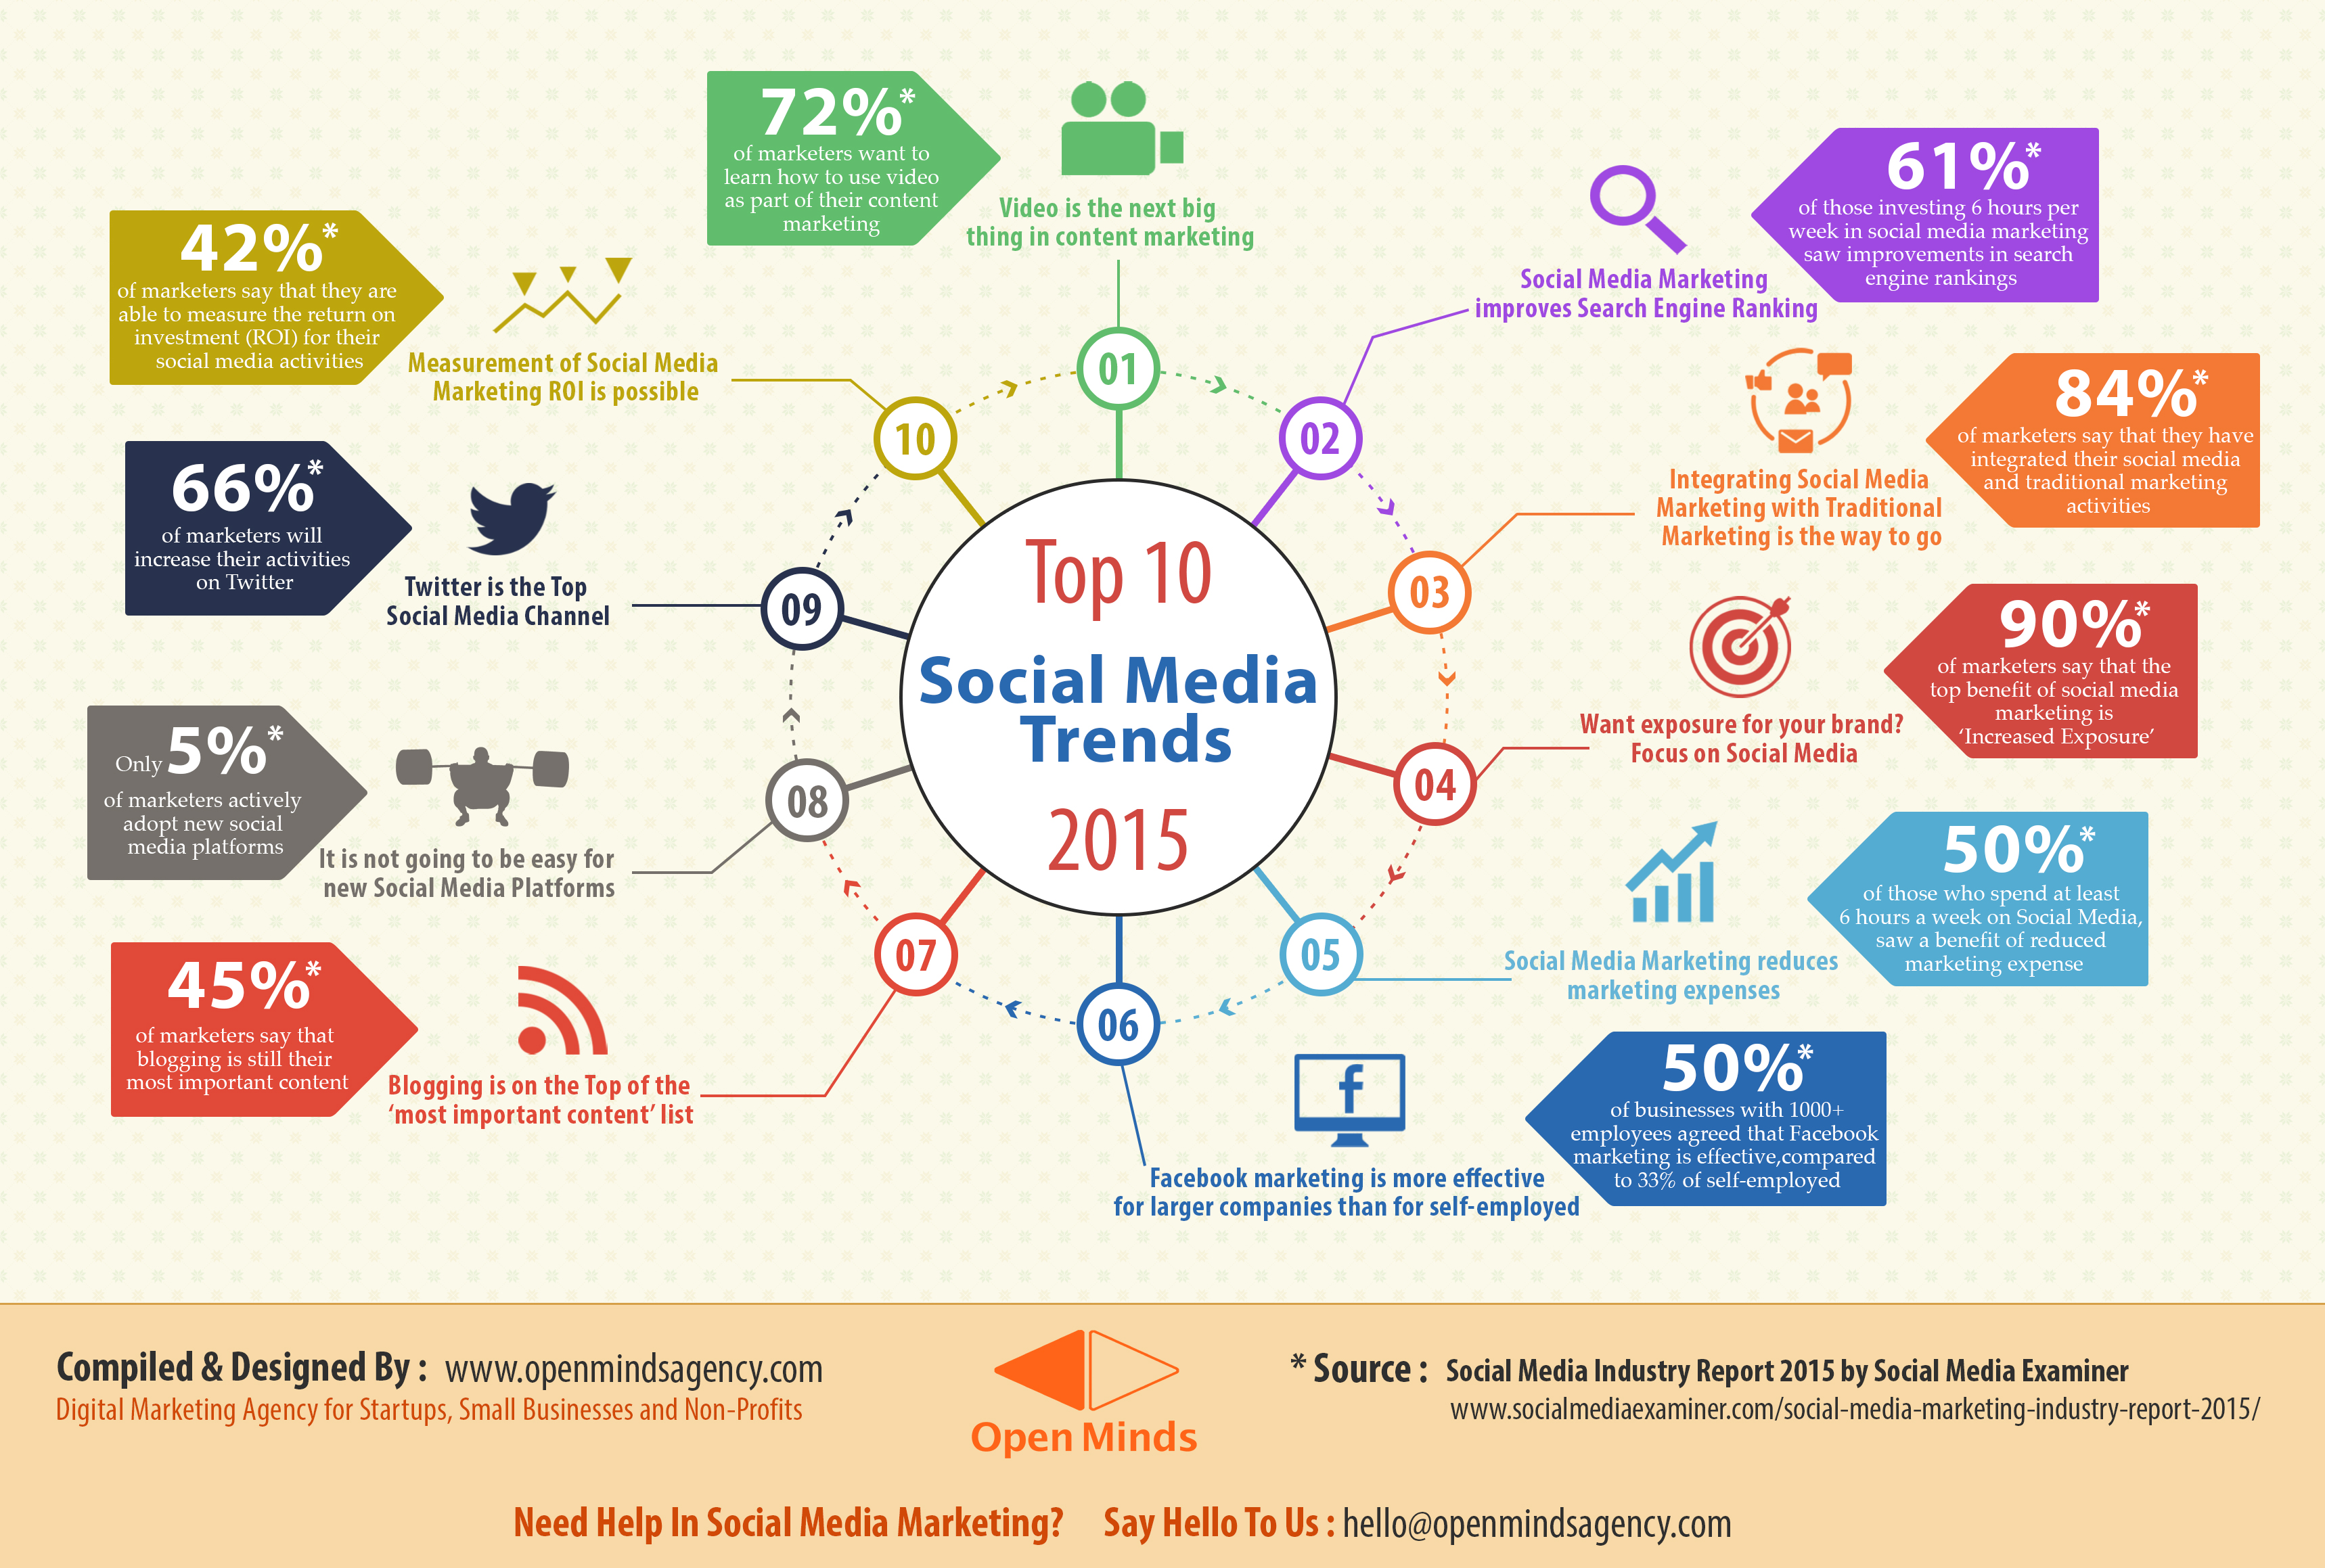 Top 10 Latest Social Media Trends - 2015 Industry Report